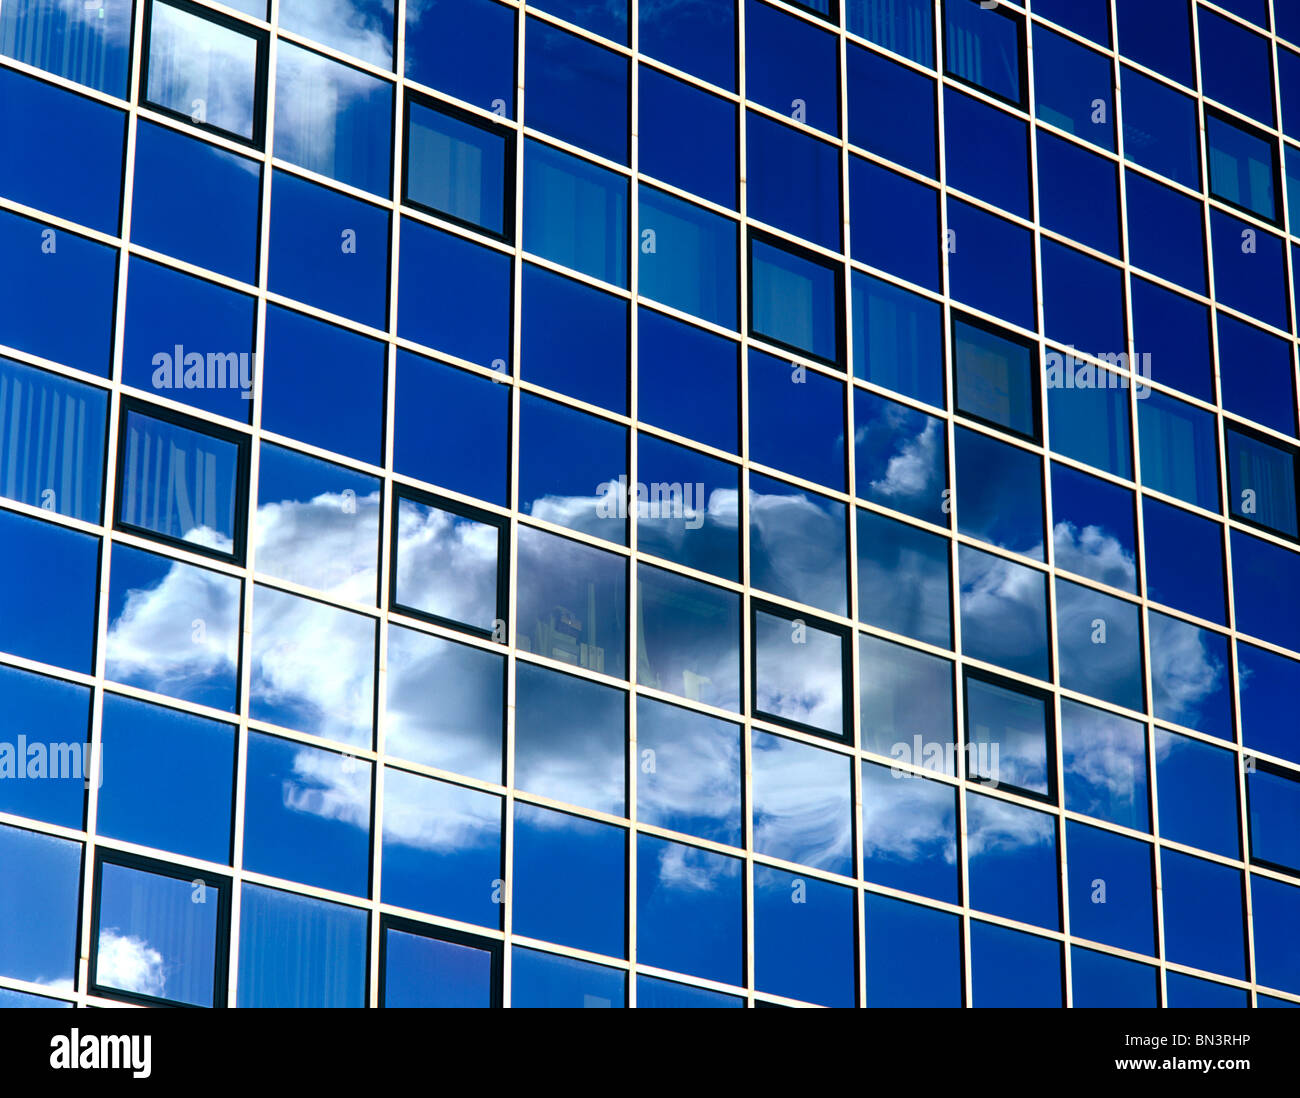 Reflection of clouds on window glasses - Stock Image